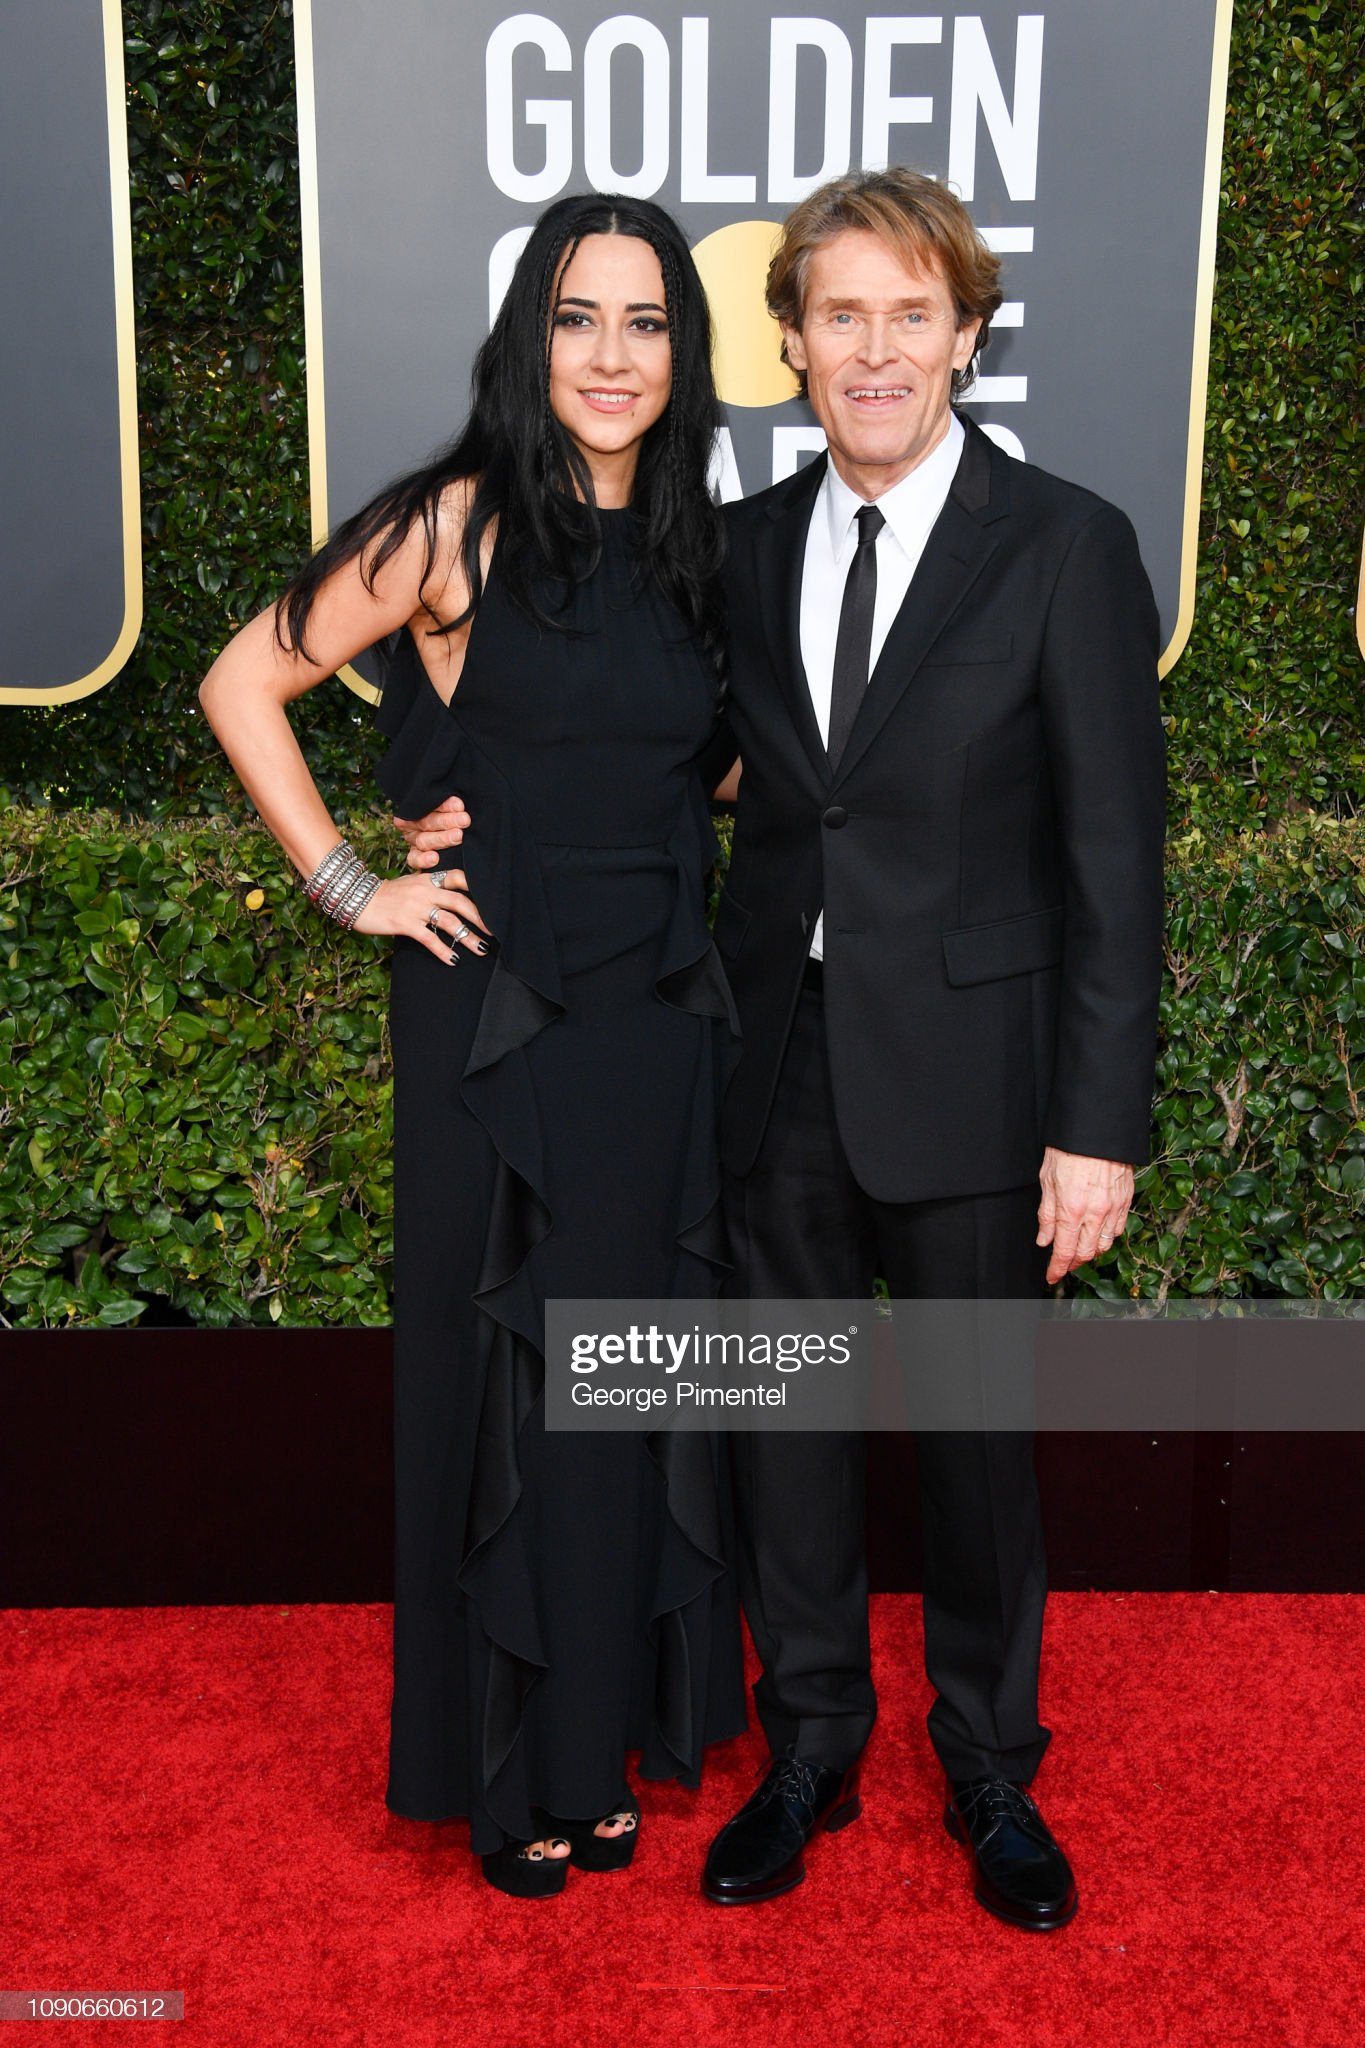 ¿Cuánto mide Willem Dafoe? - Altura - Real height Giada-colagrande-and-willem-dafoe-attend-the-76th-annual-golden-globe-picture-id1090660612?s=2048x2048